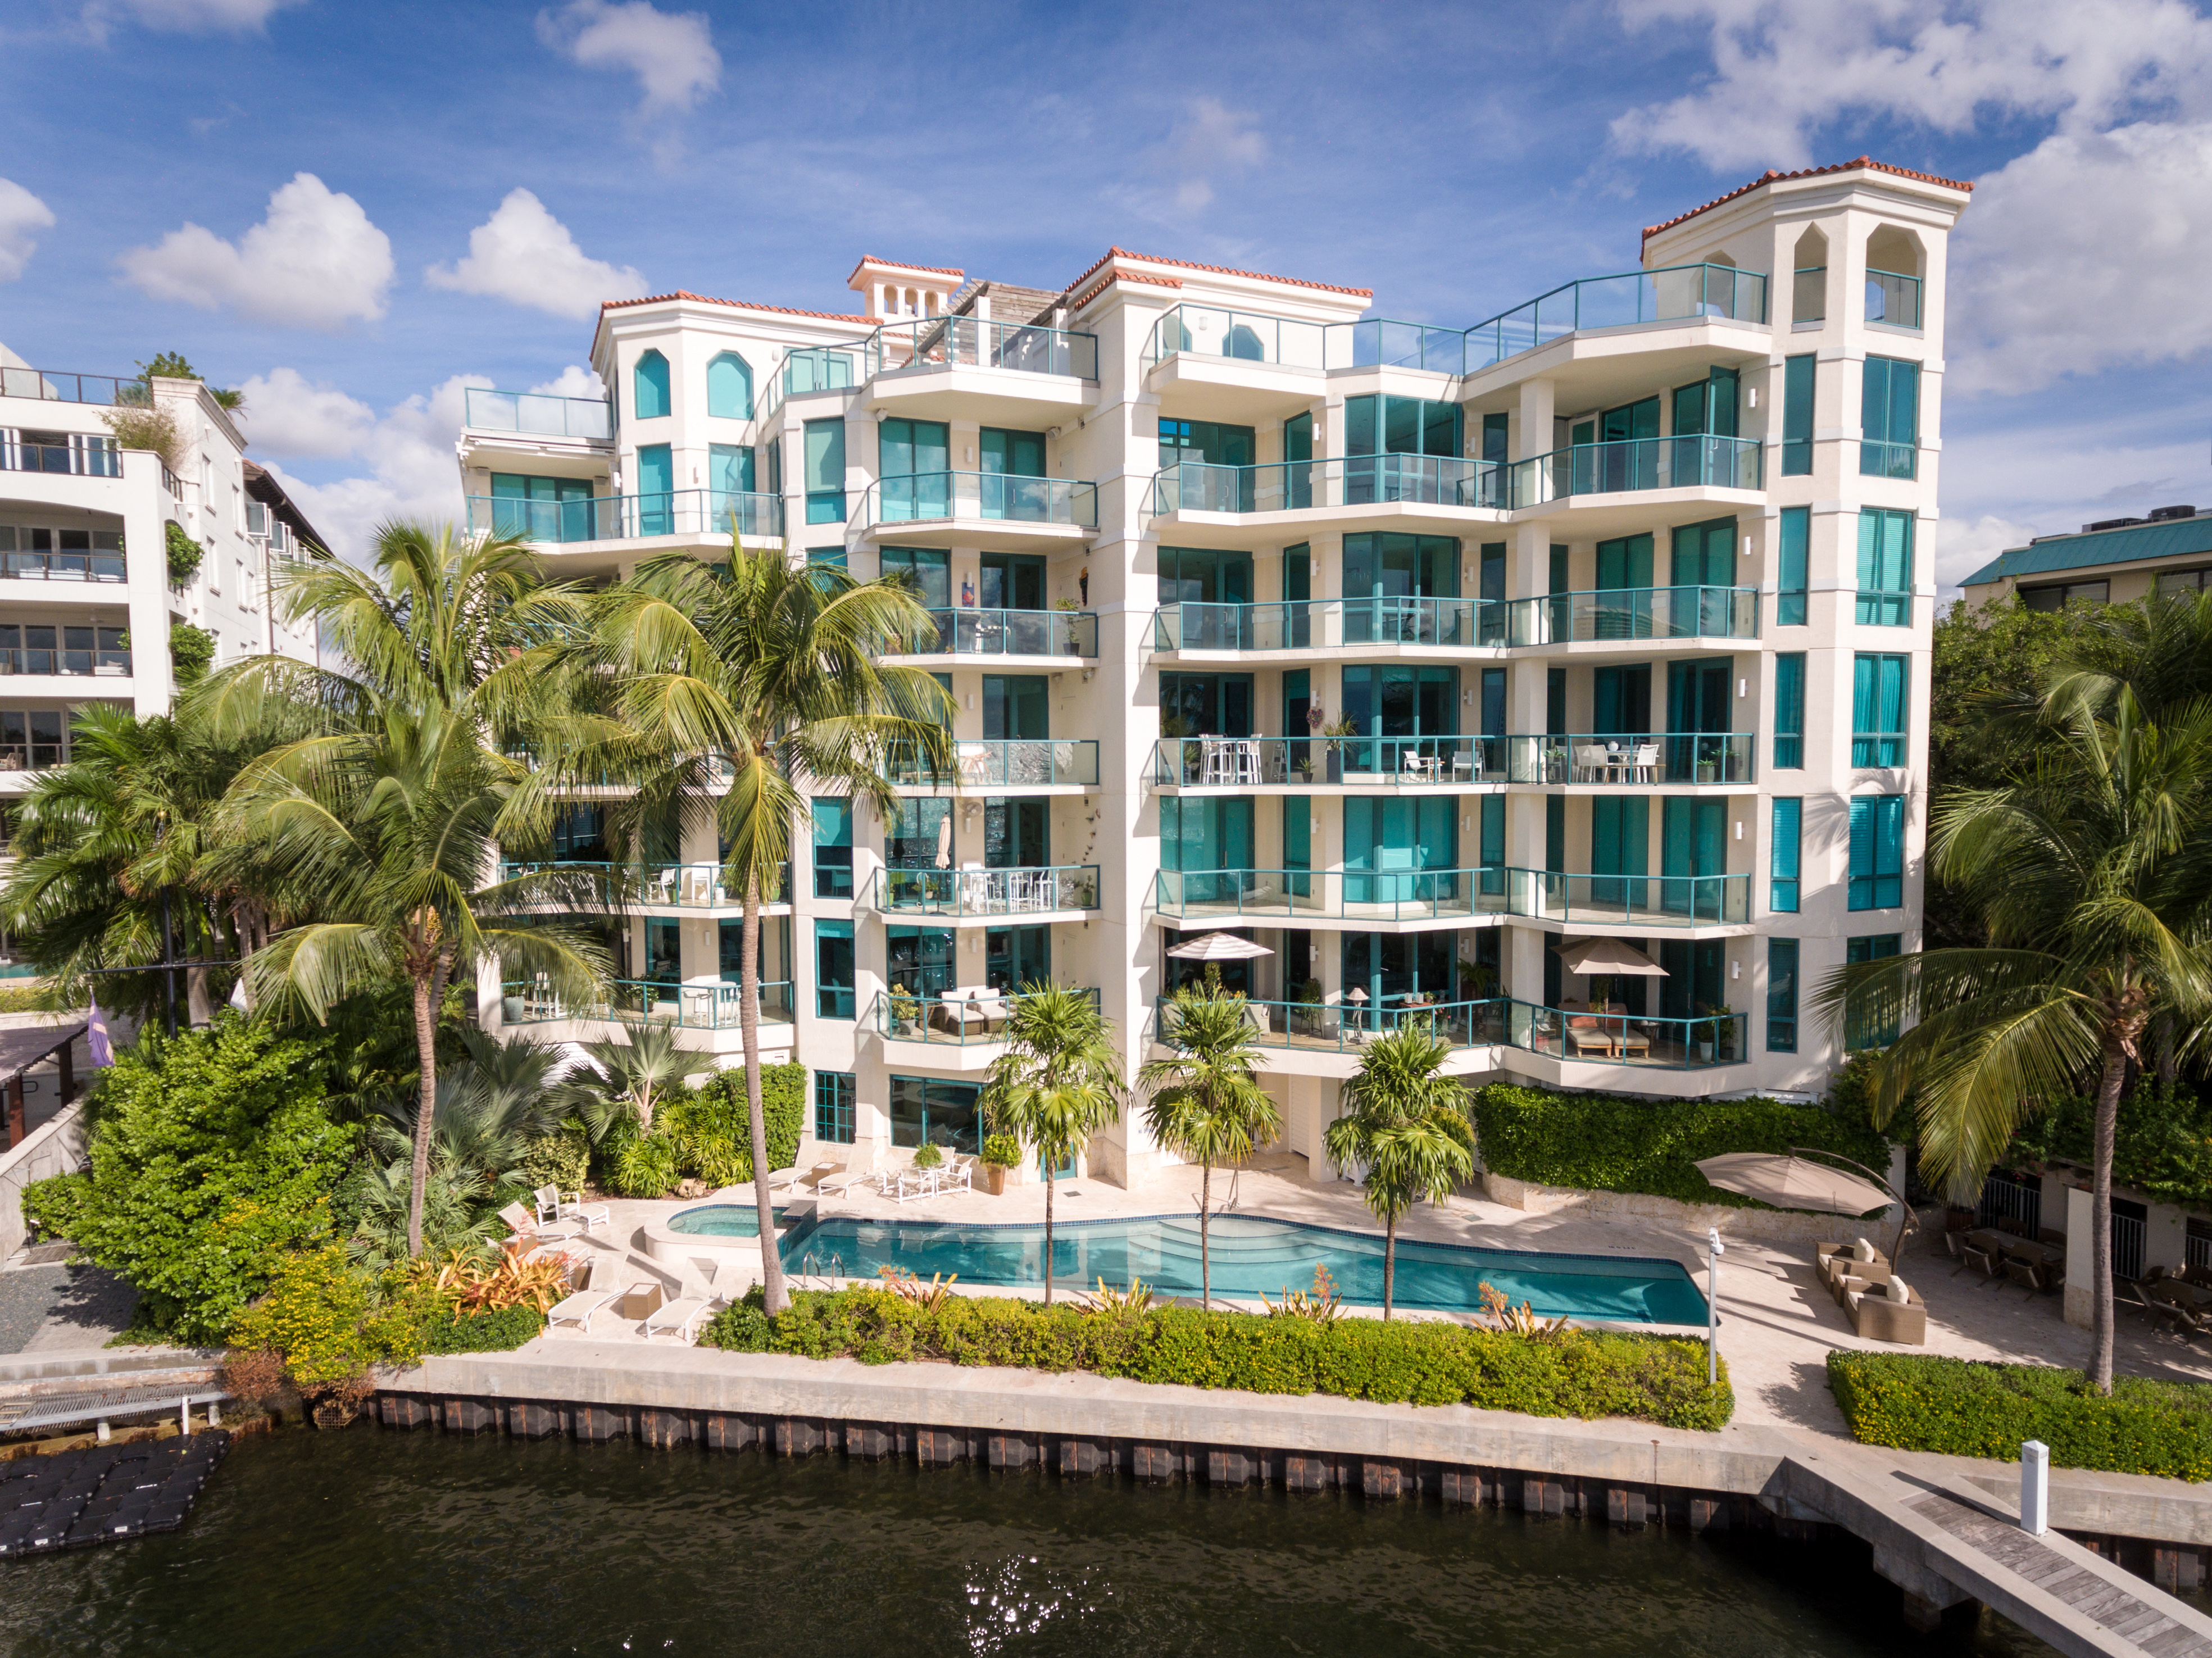 Condominium for Sale at 1660 S Bayshore Ct #101 1660 S Bayshore Ct 101 Coconut Grove, Florida, 33133 United States